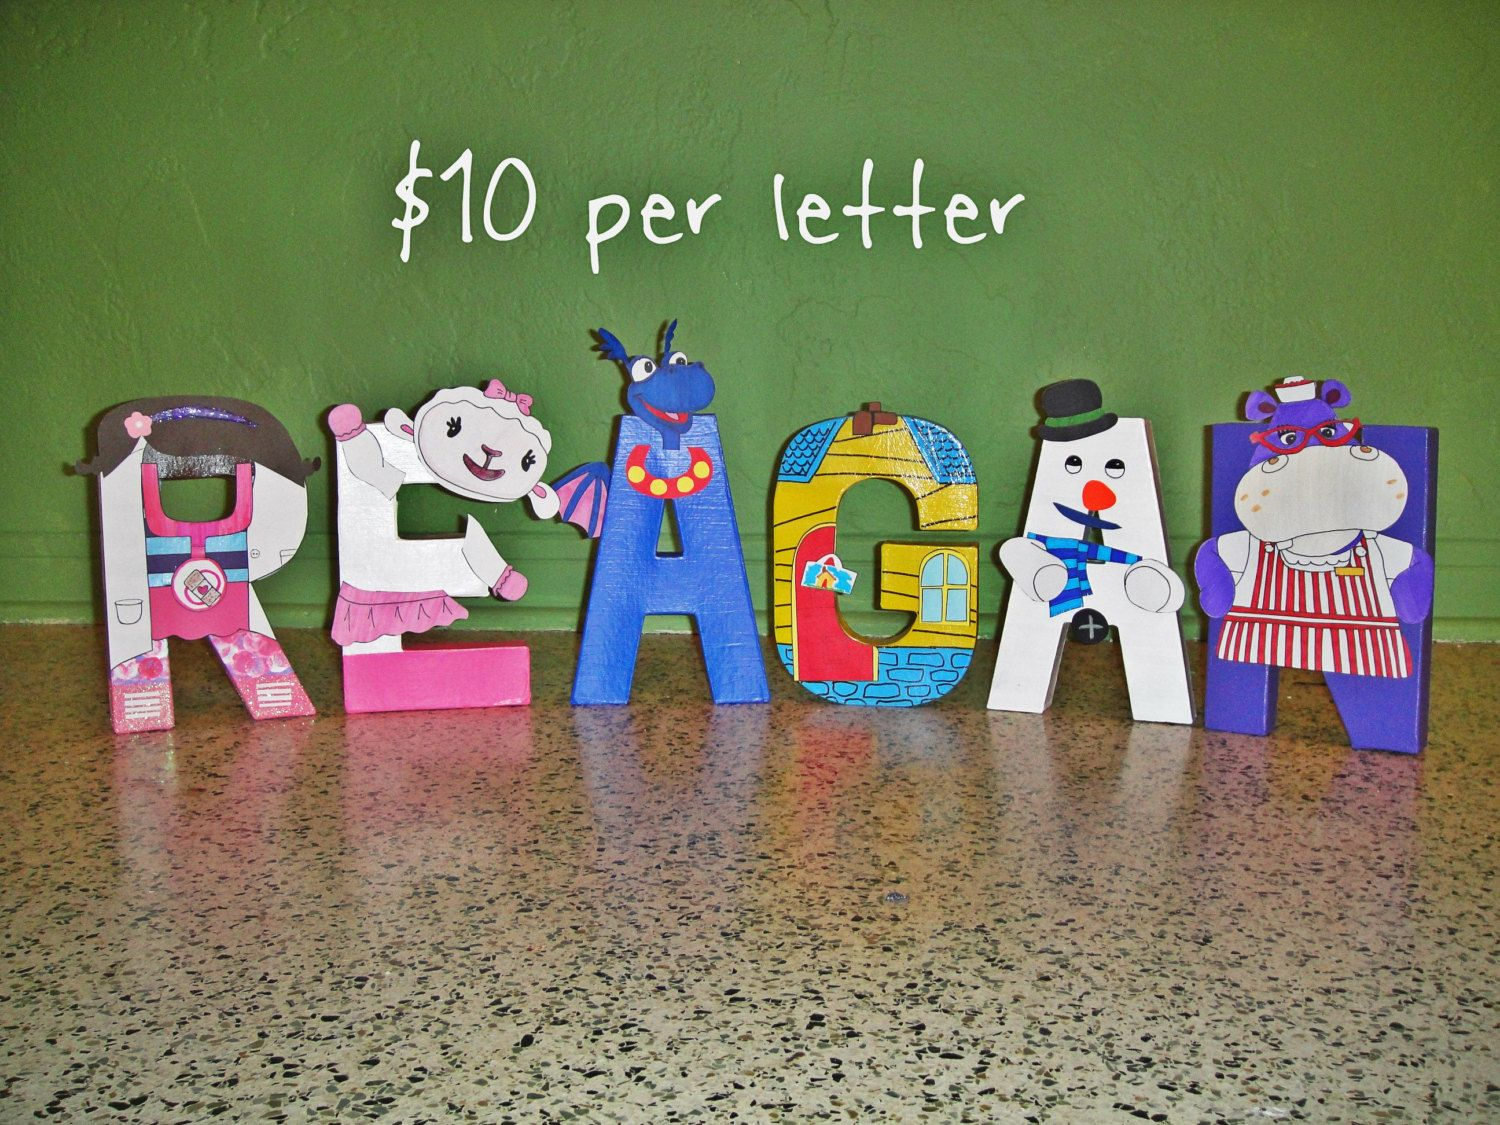 Doc Mcstuffins Character Letter Art By Gunnersnook